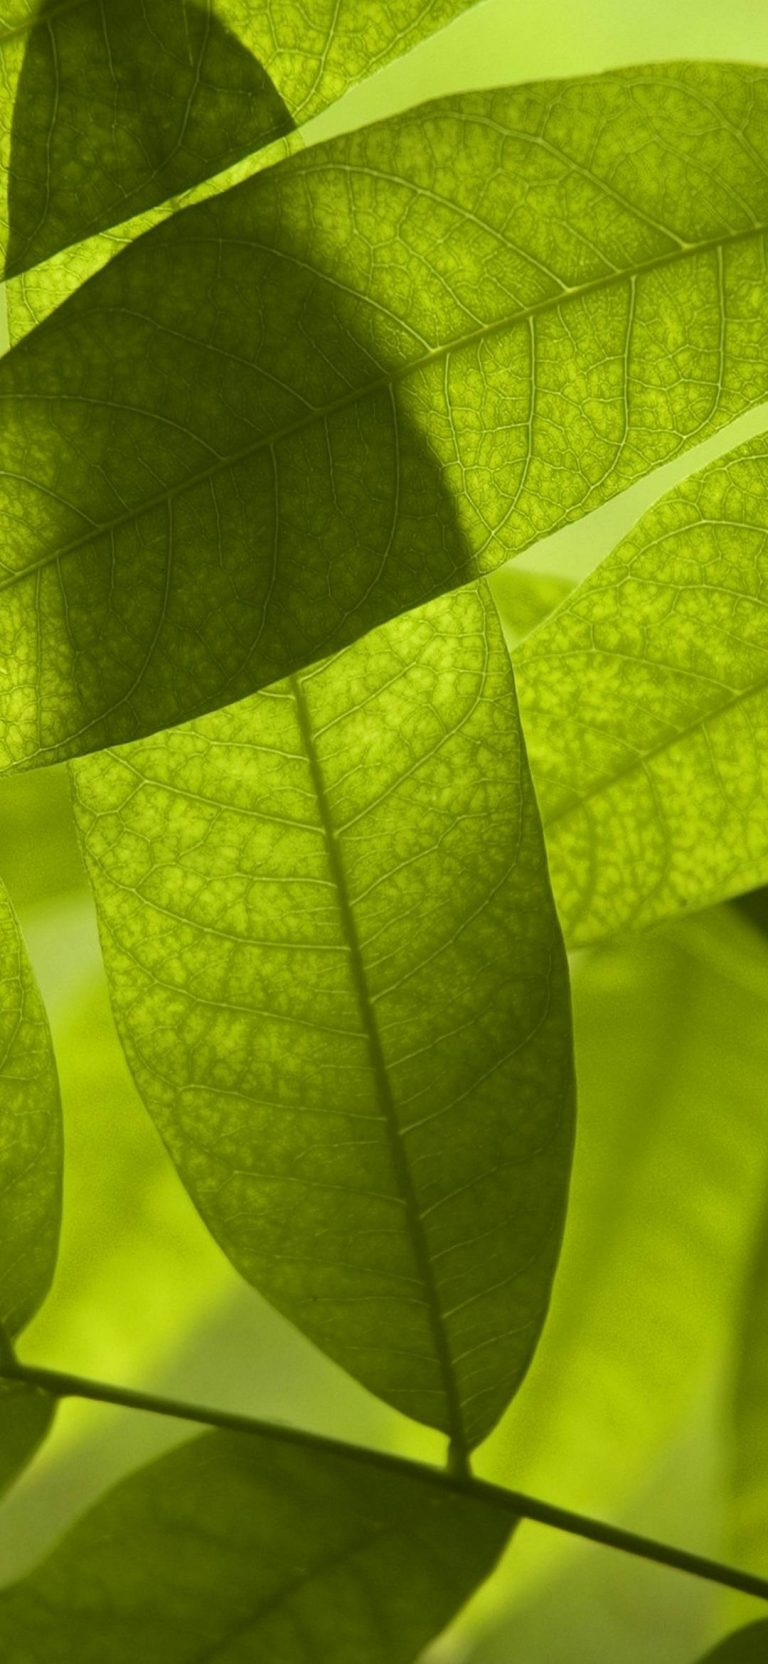 Nature-Leaves-Digital-Art-Macro-1080x2340-768x1664 - 51+ BEST Free vivo Z1 Pro Phone Wallpapers [year]